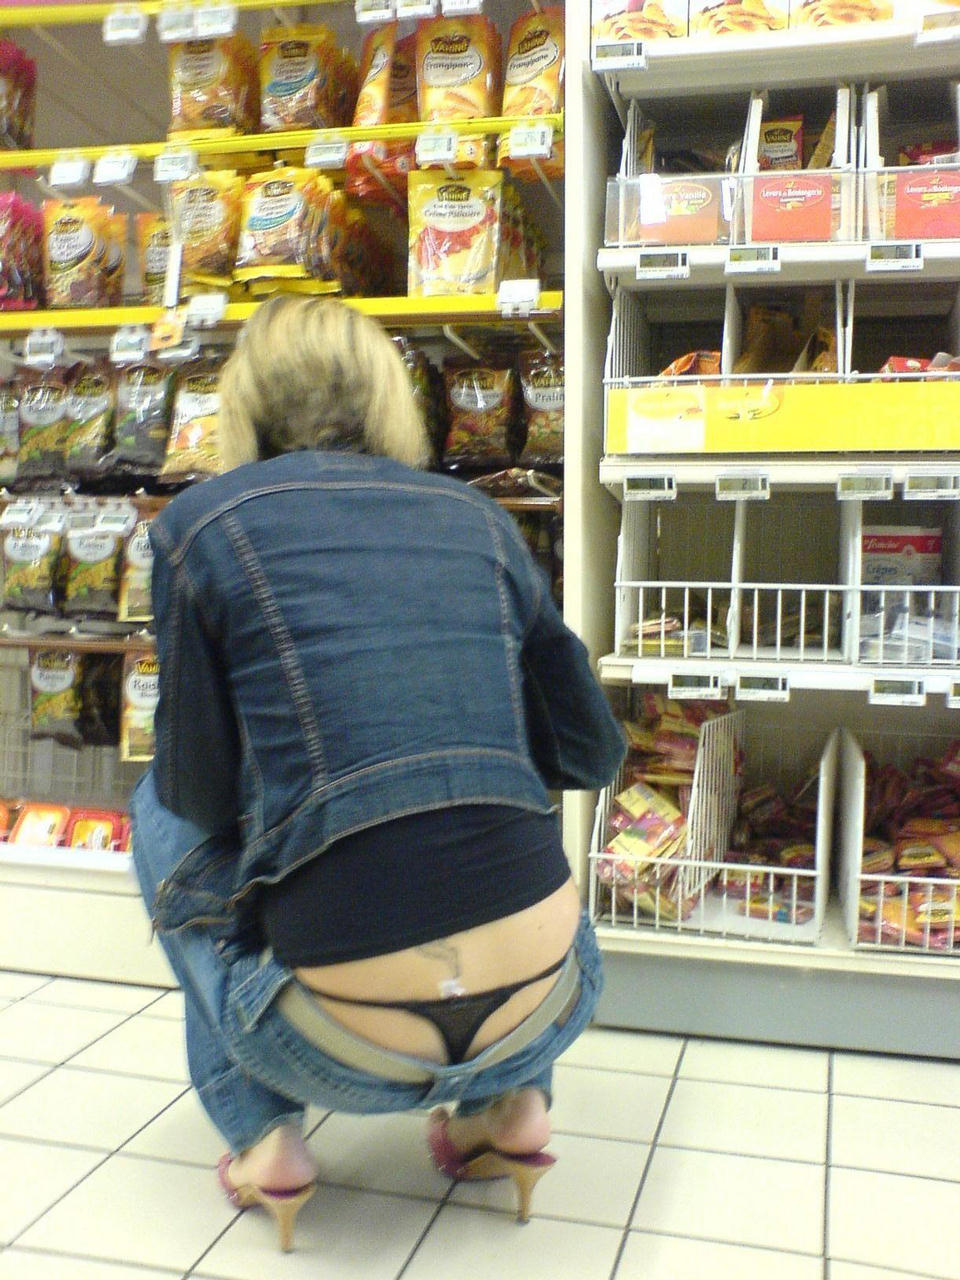 This is why grocers put the good stuff on the bottom shelf …